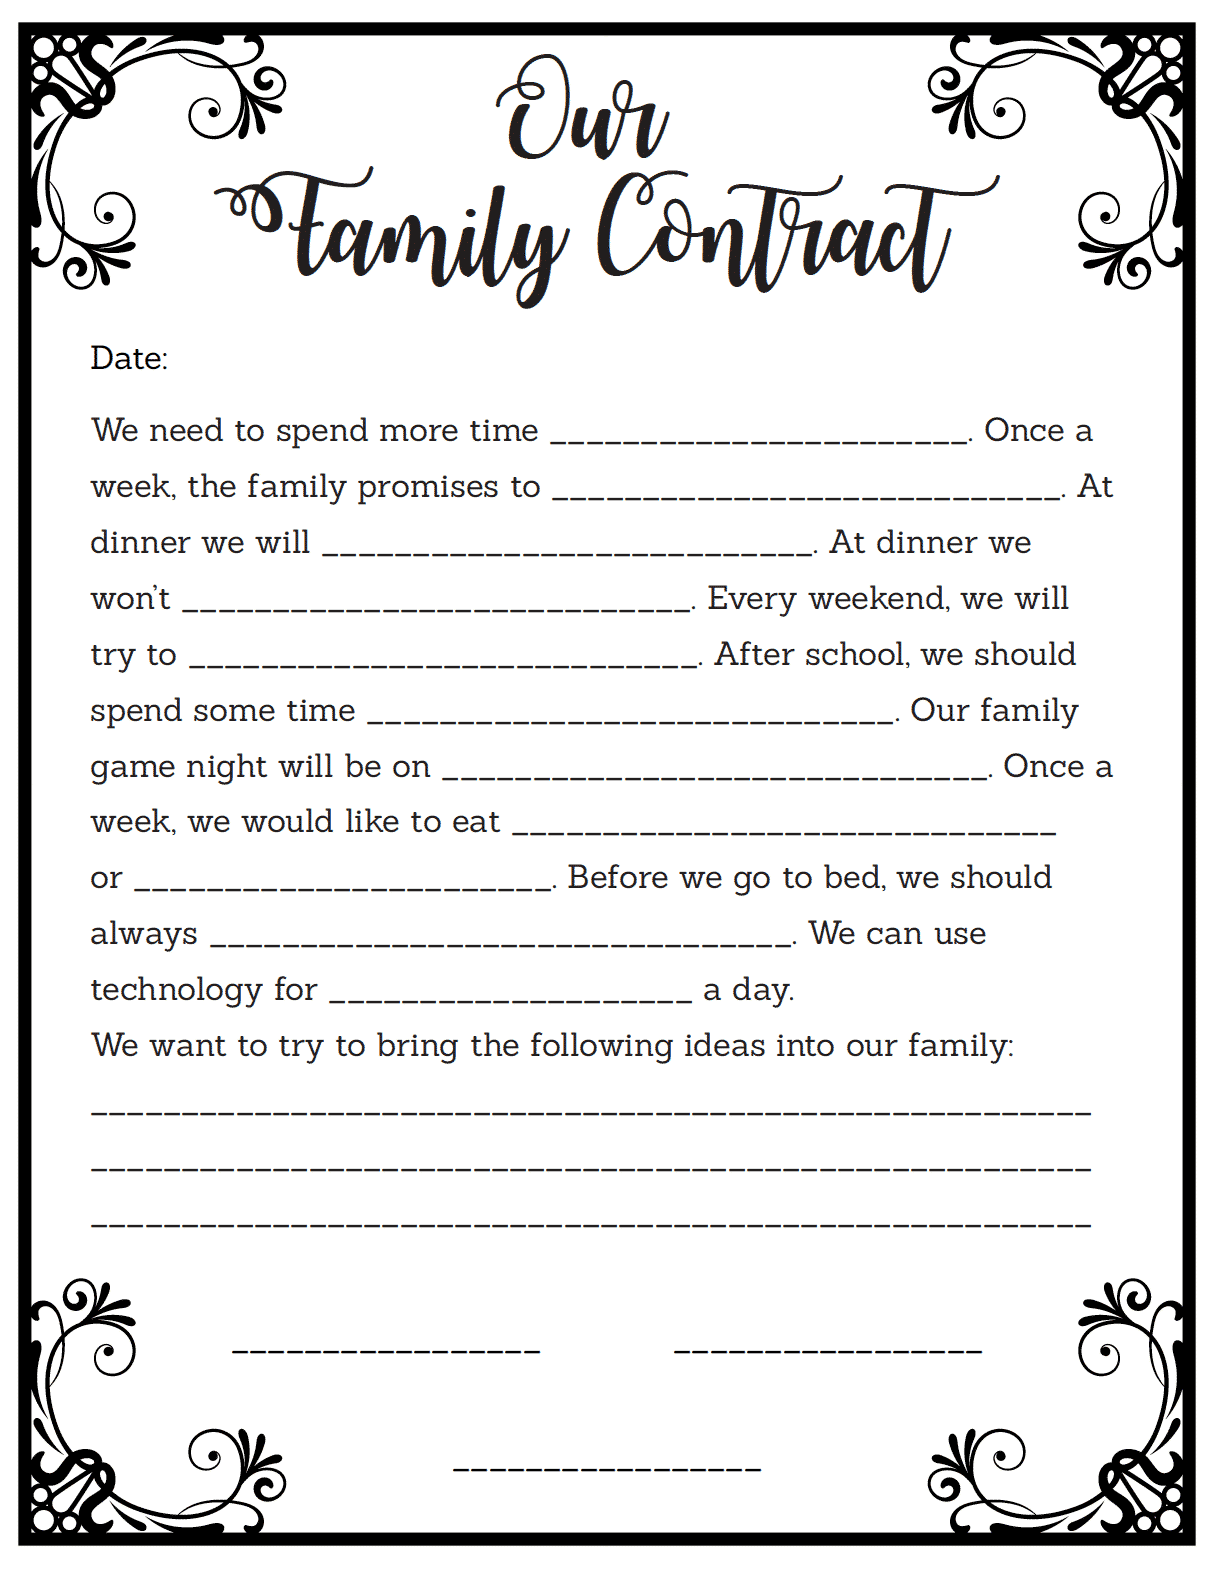 Family Contract For Kids